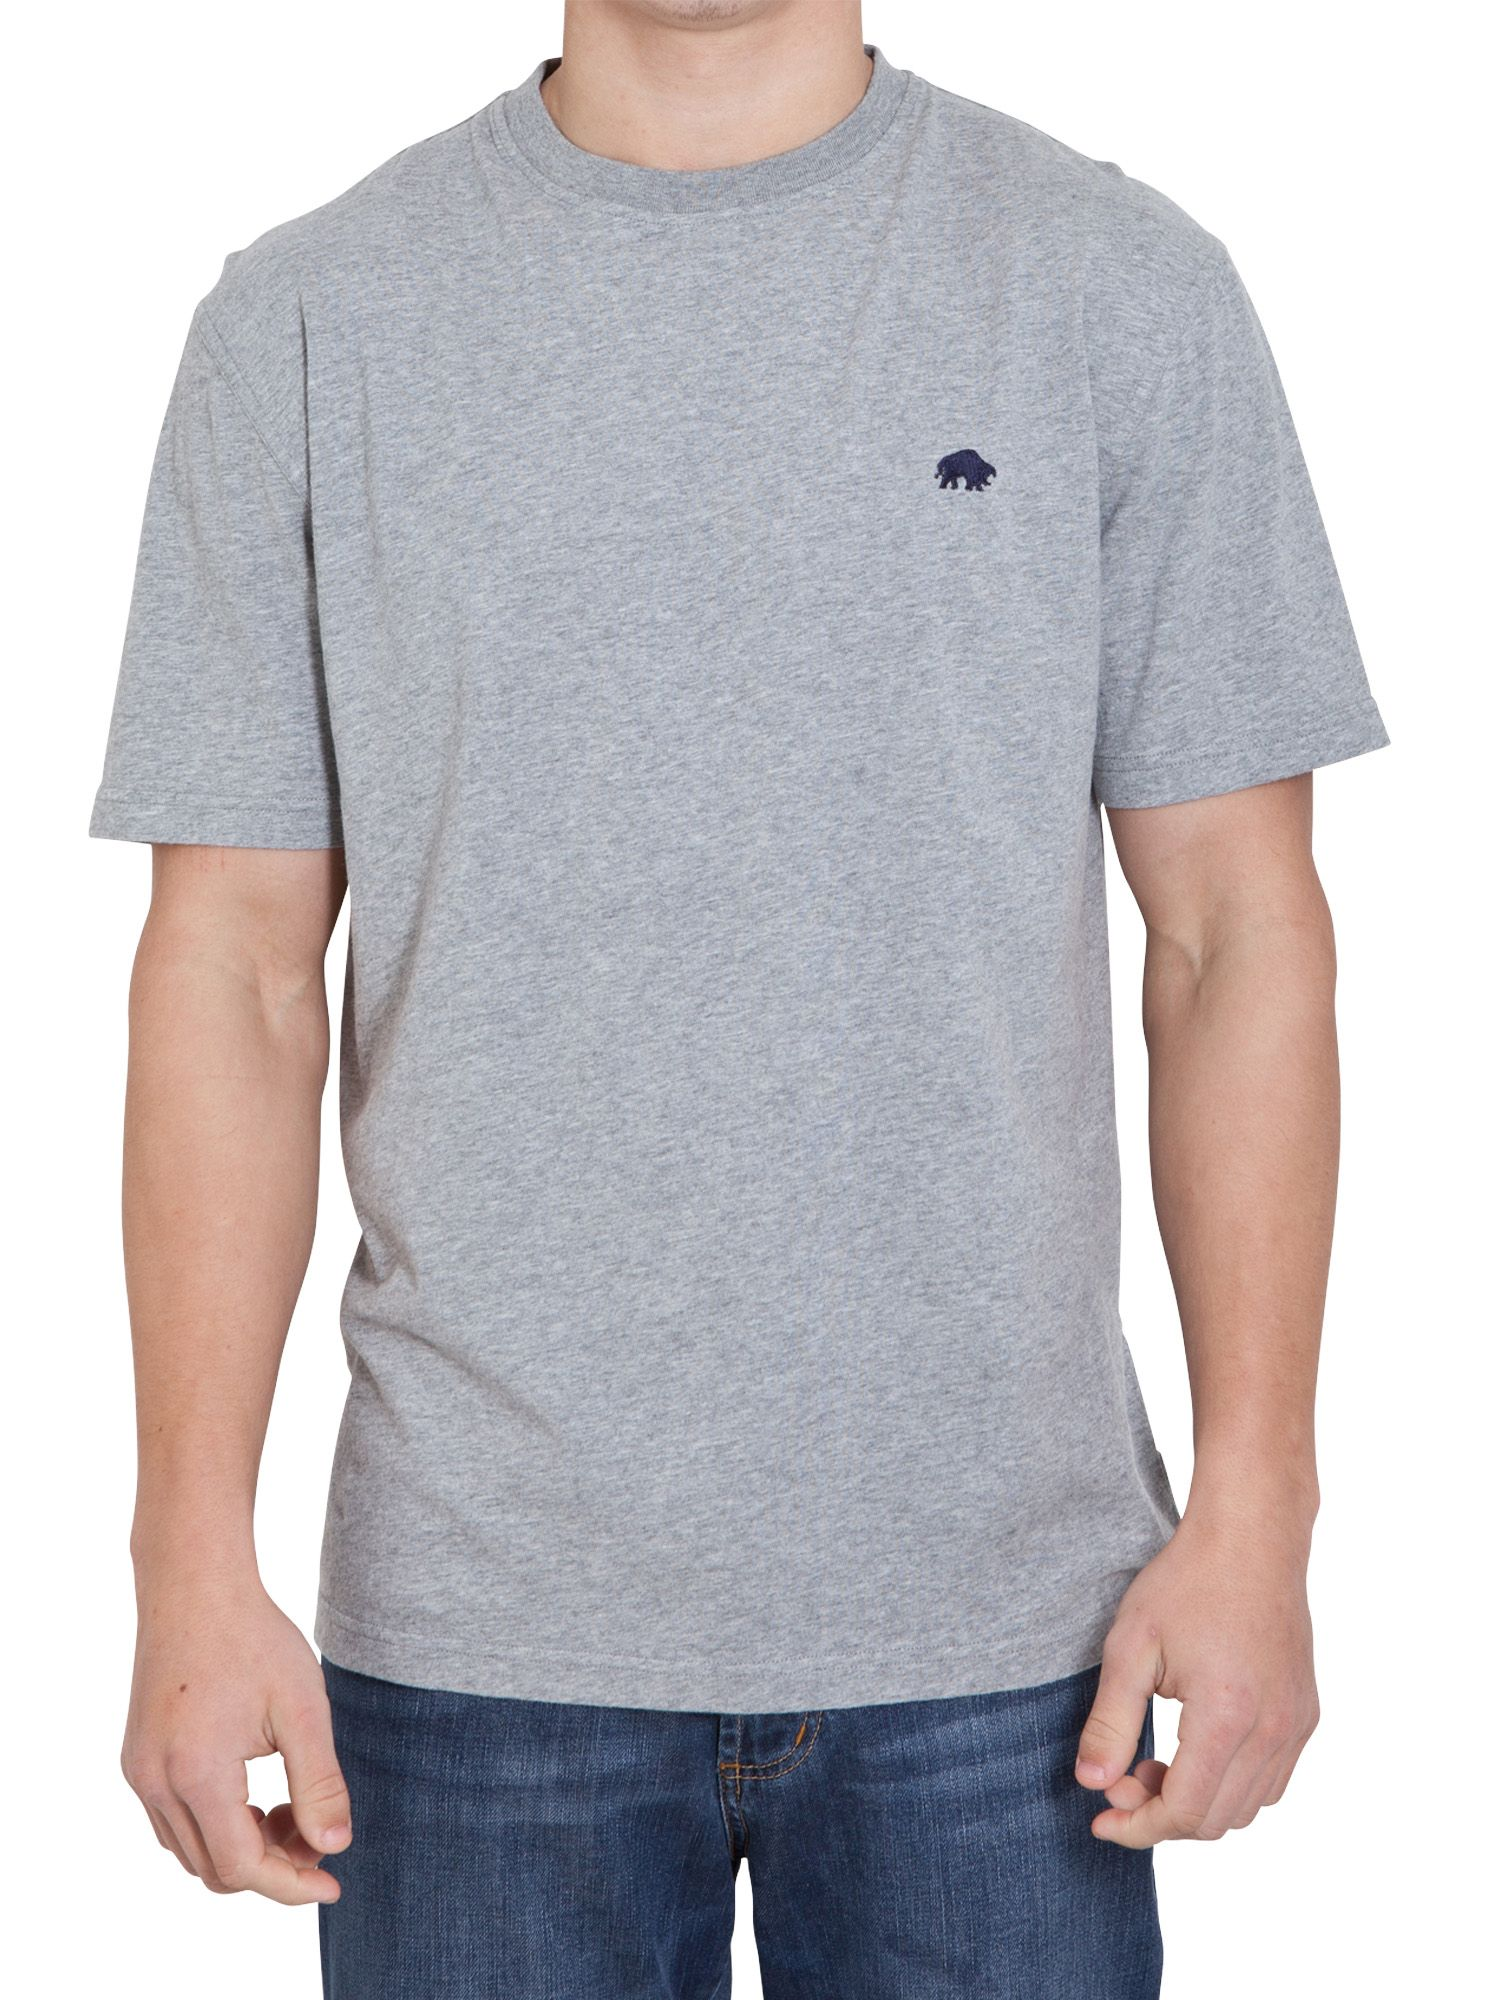 Raging Bull Mens Raging Bull Classic t-shirt, Grey Marl product image